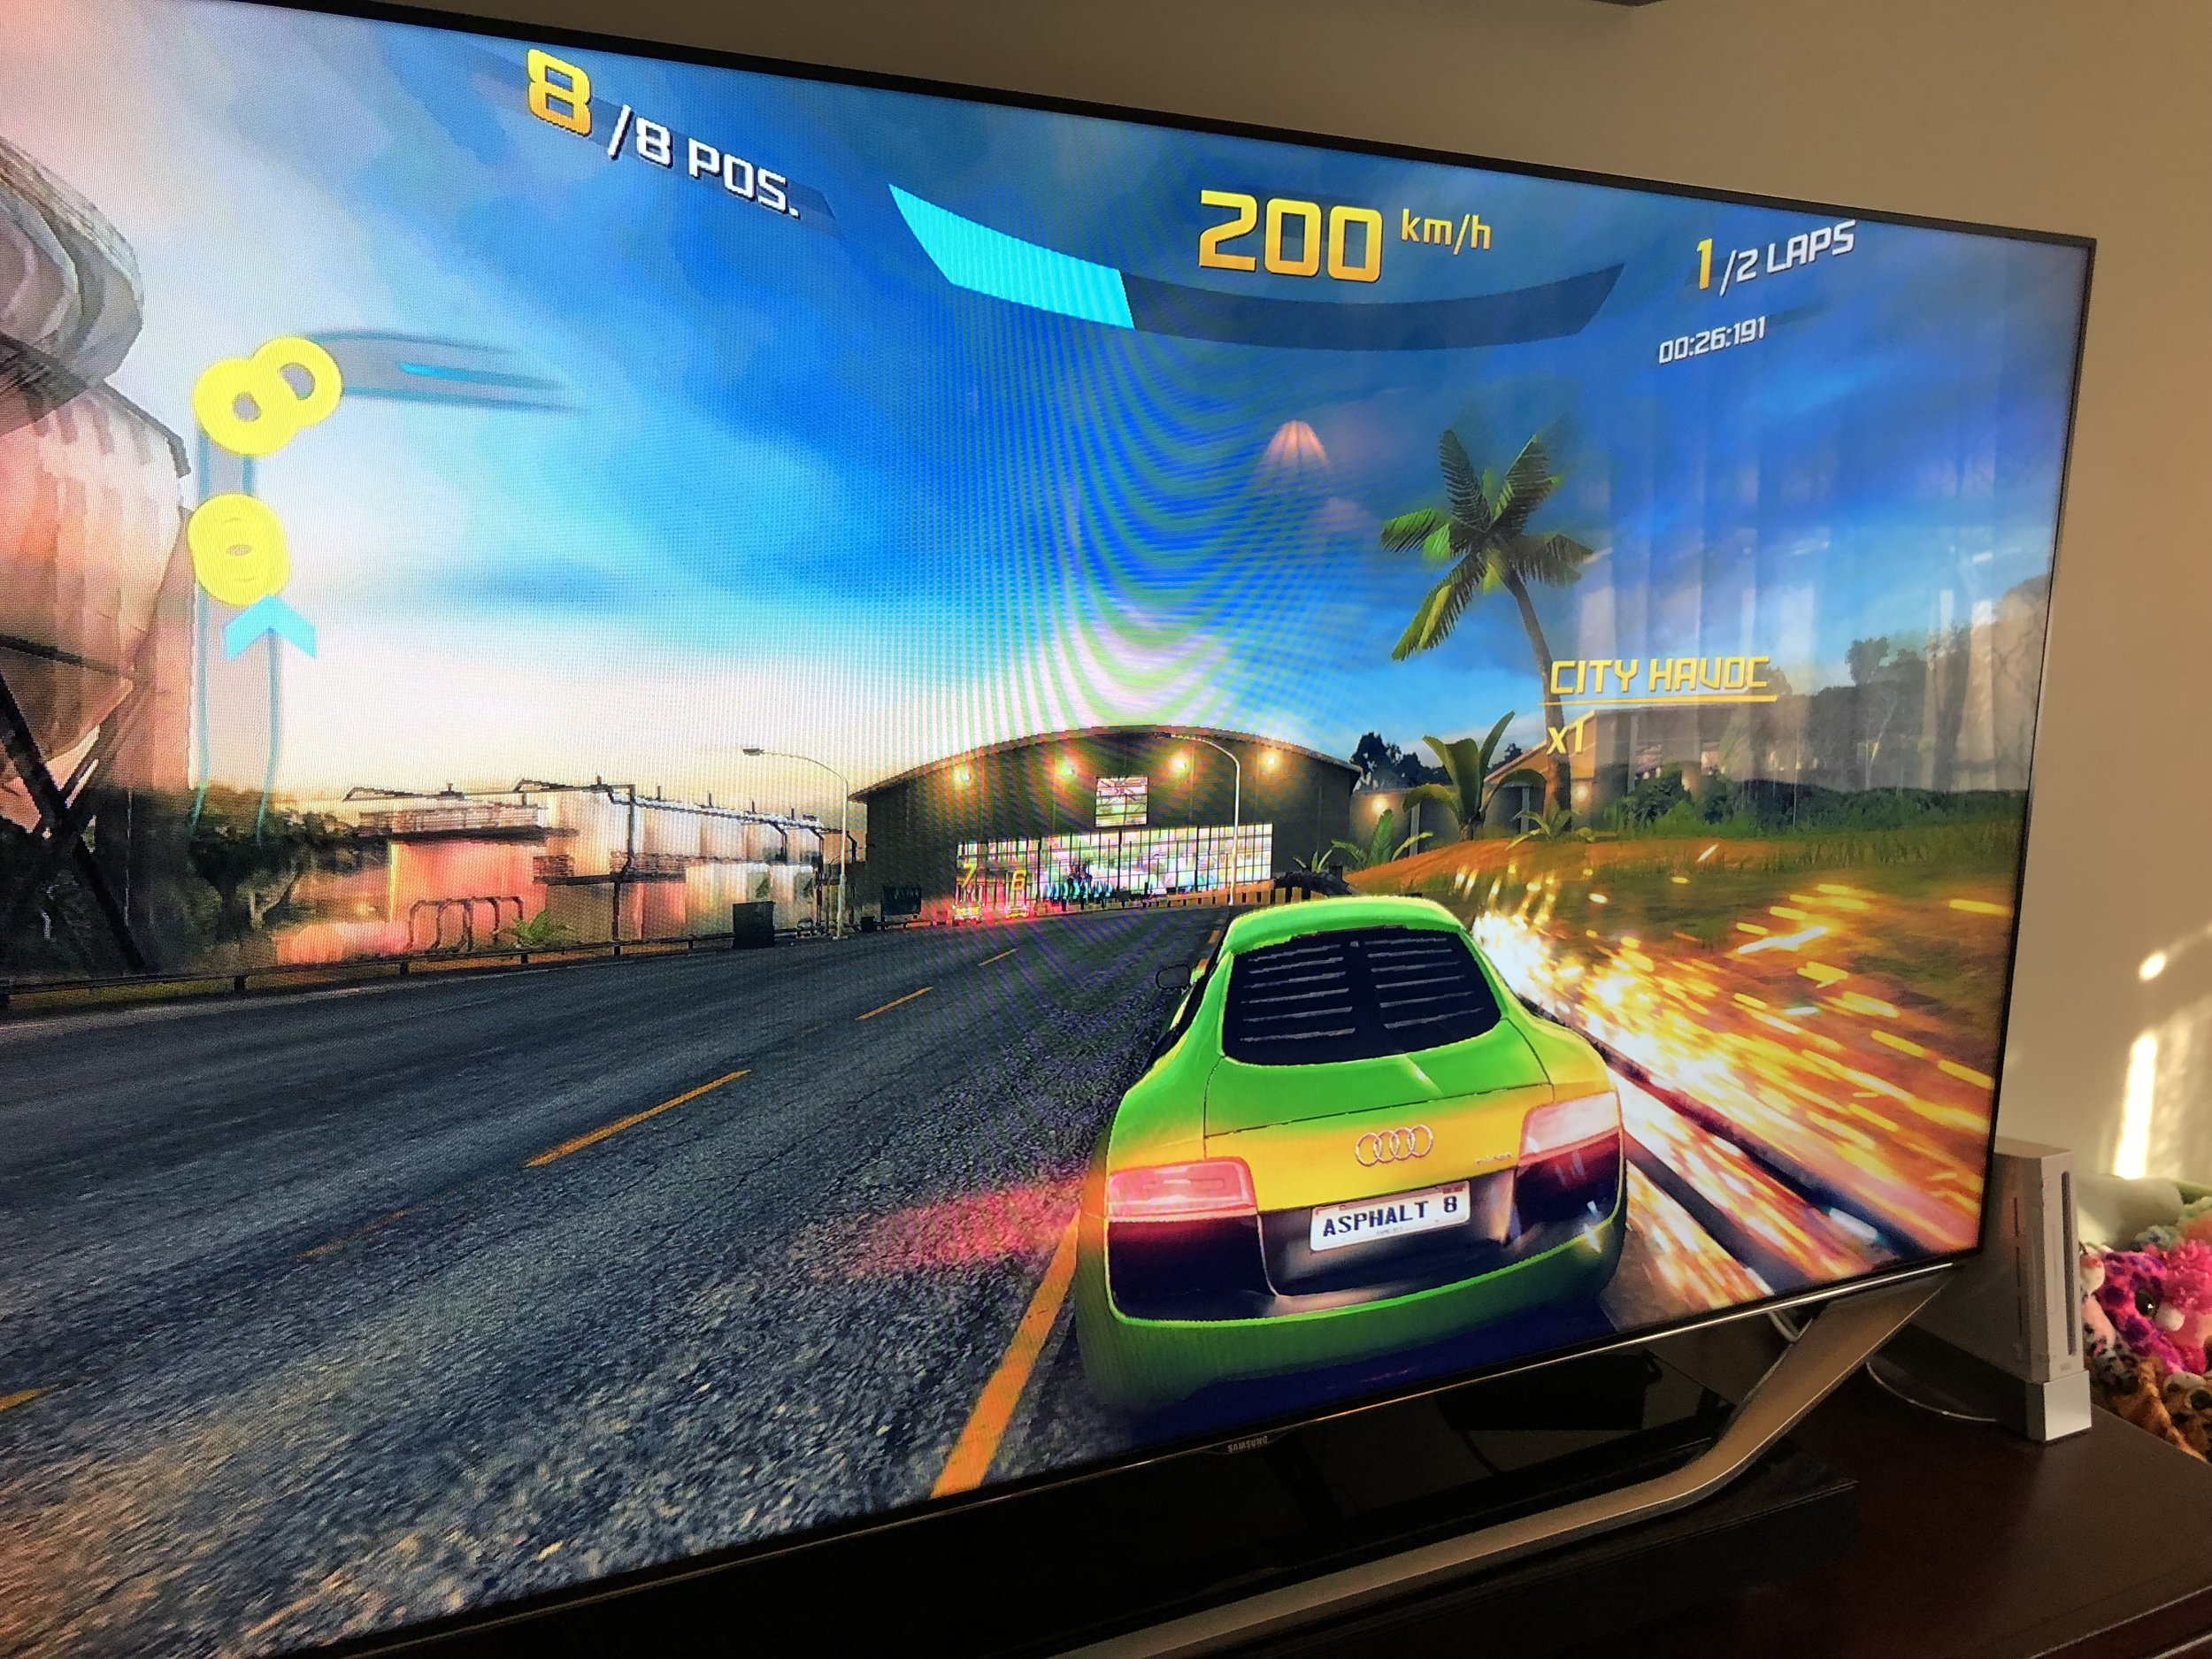 Playing games like Asphalt 8 with a controller on Apple TV 4K is a surprisingly rewarding console experience